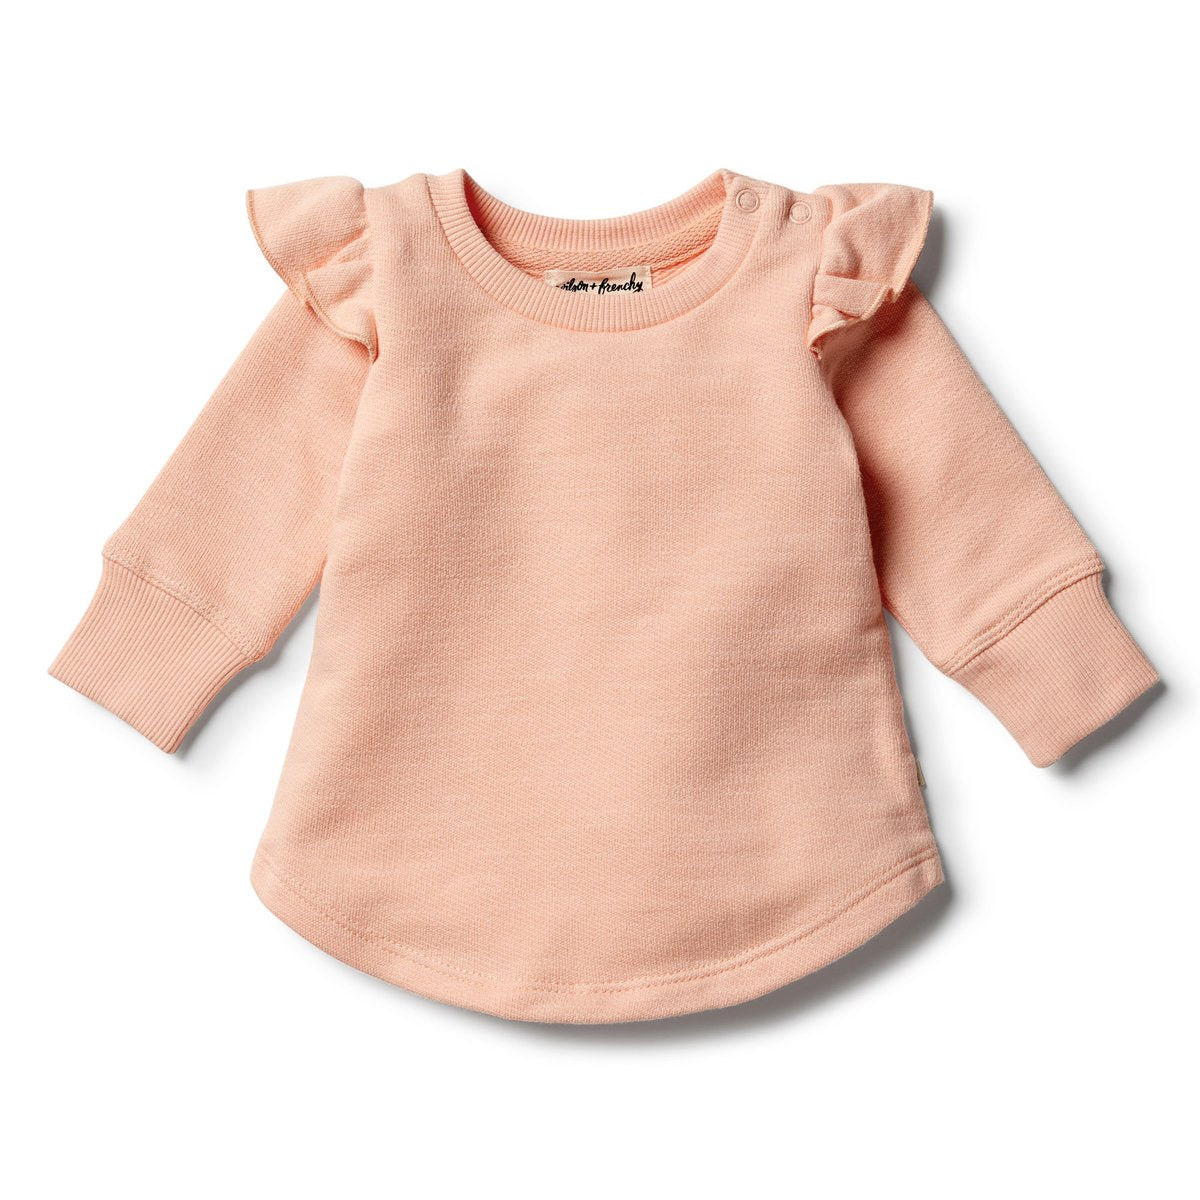 Wilson & Frenchy - Tropical Peach Speckle Ruffle Sweat Top